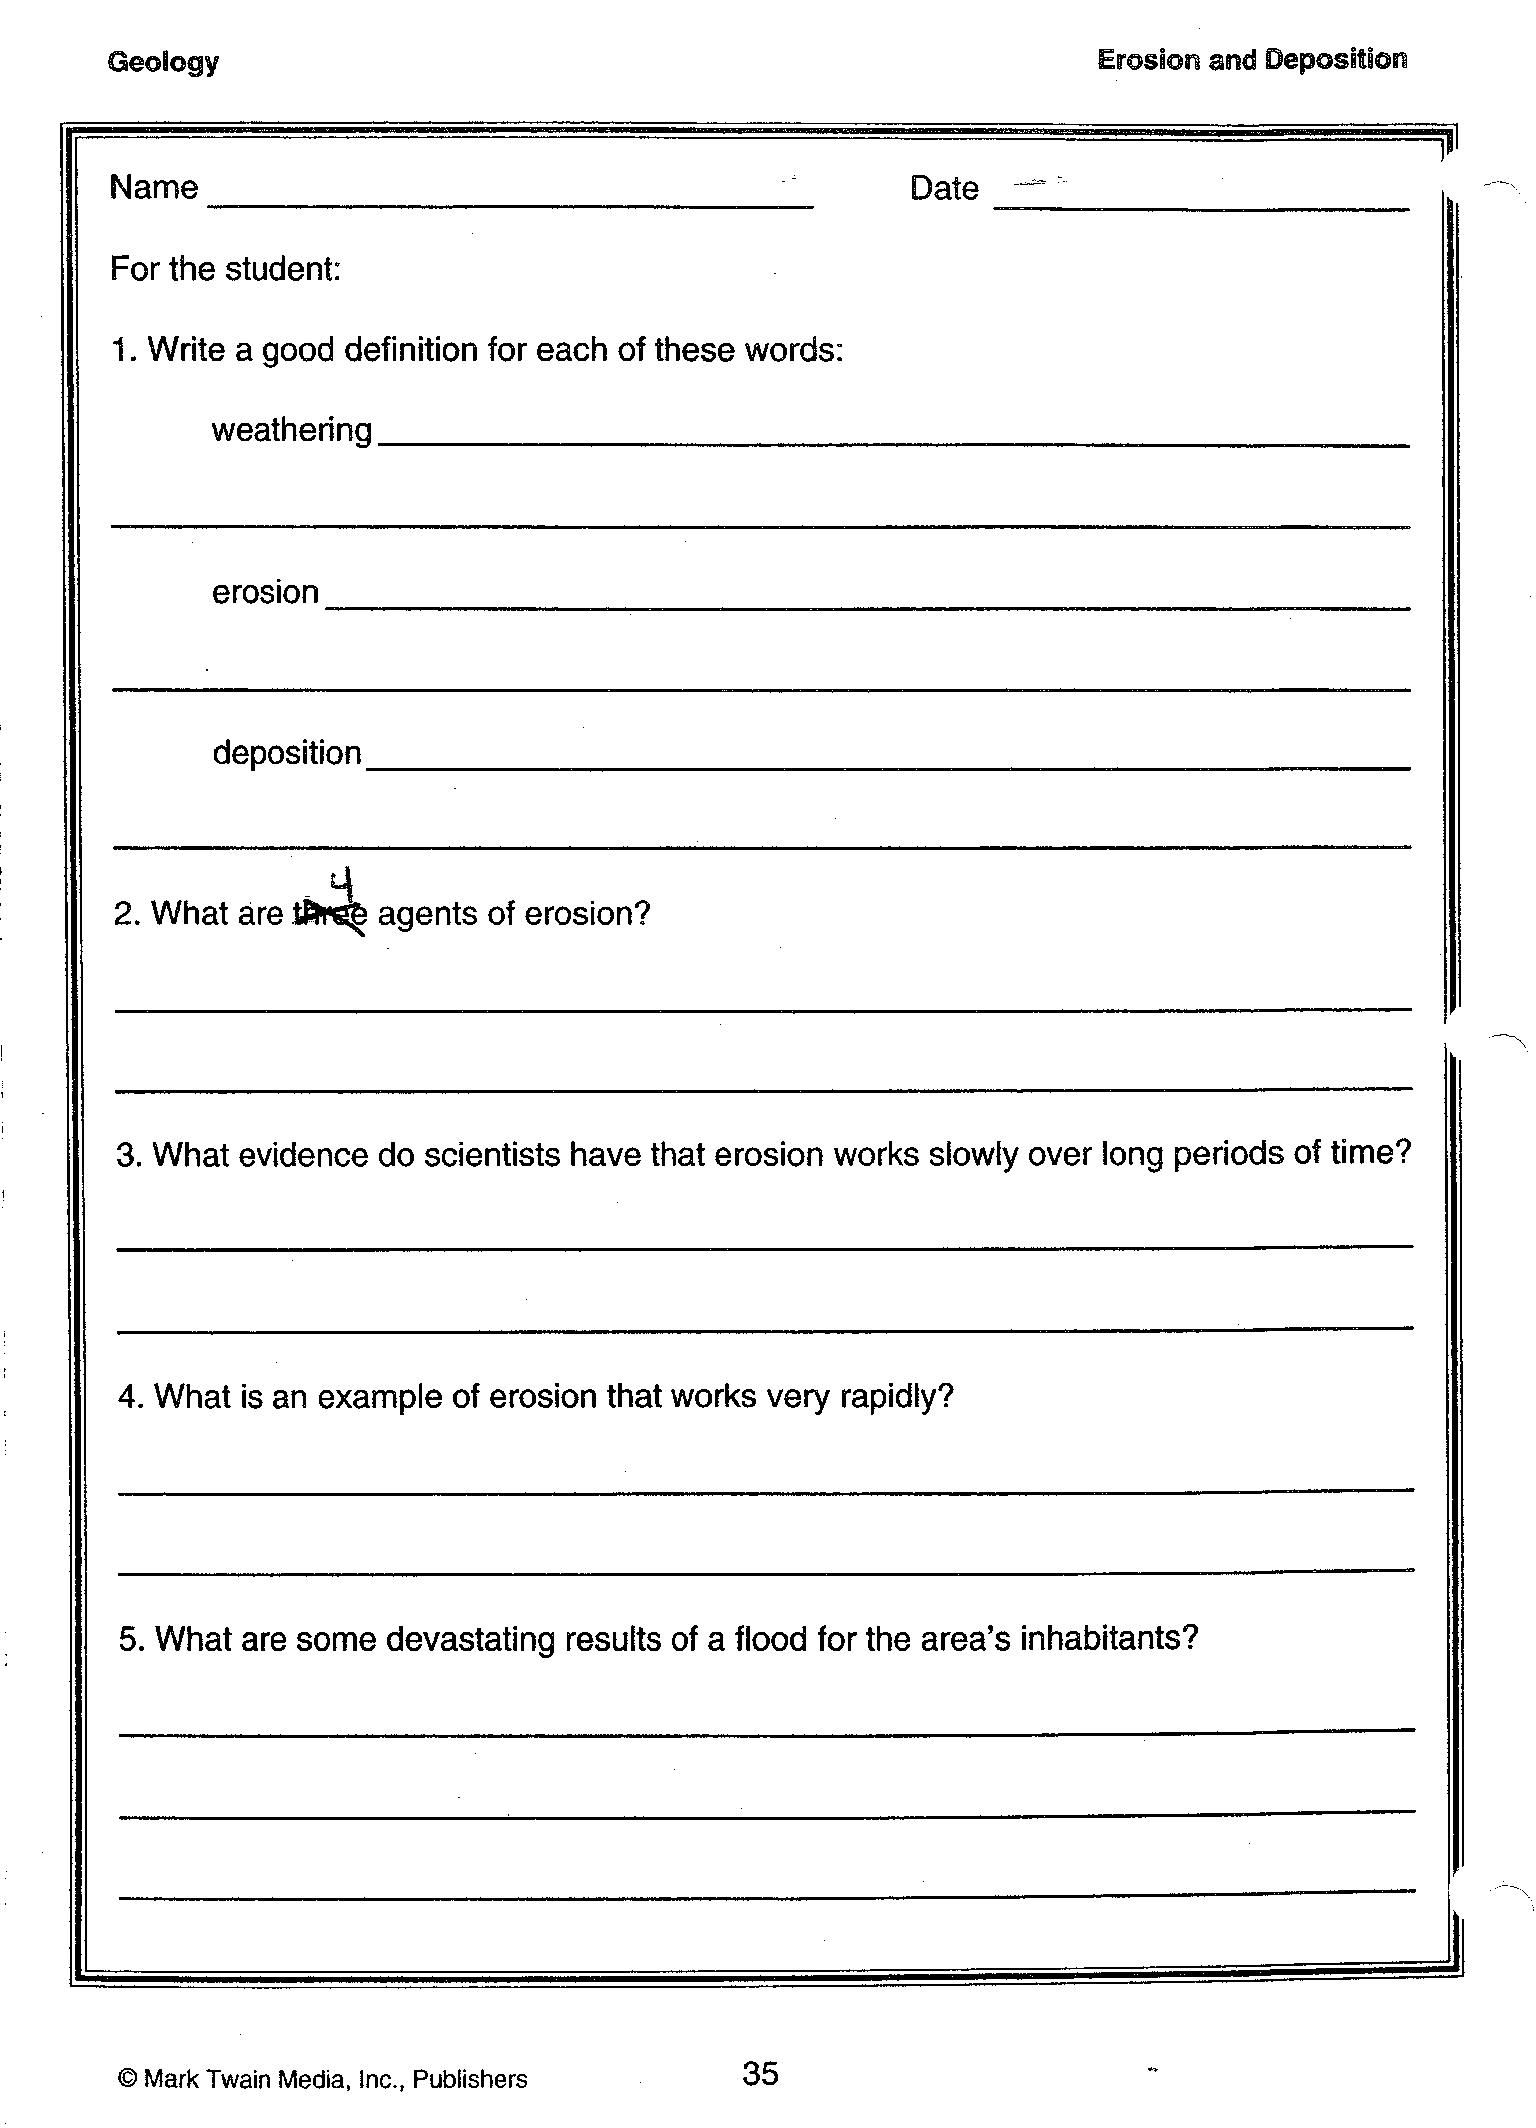 Erosion And Deposition Definitions 001 Jpg 1536 2128 Weathering And Erosion Worksheet Template Erosion